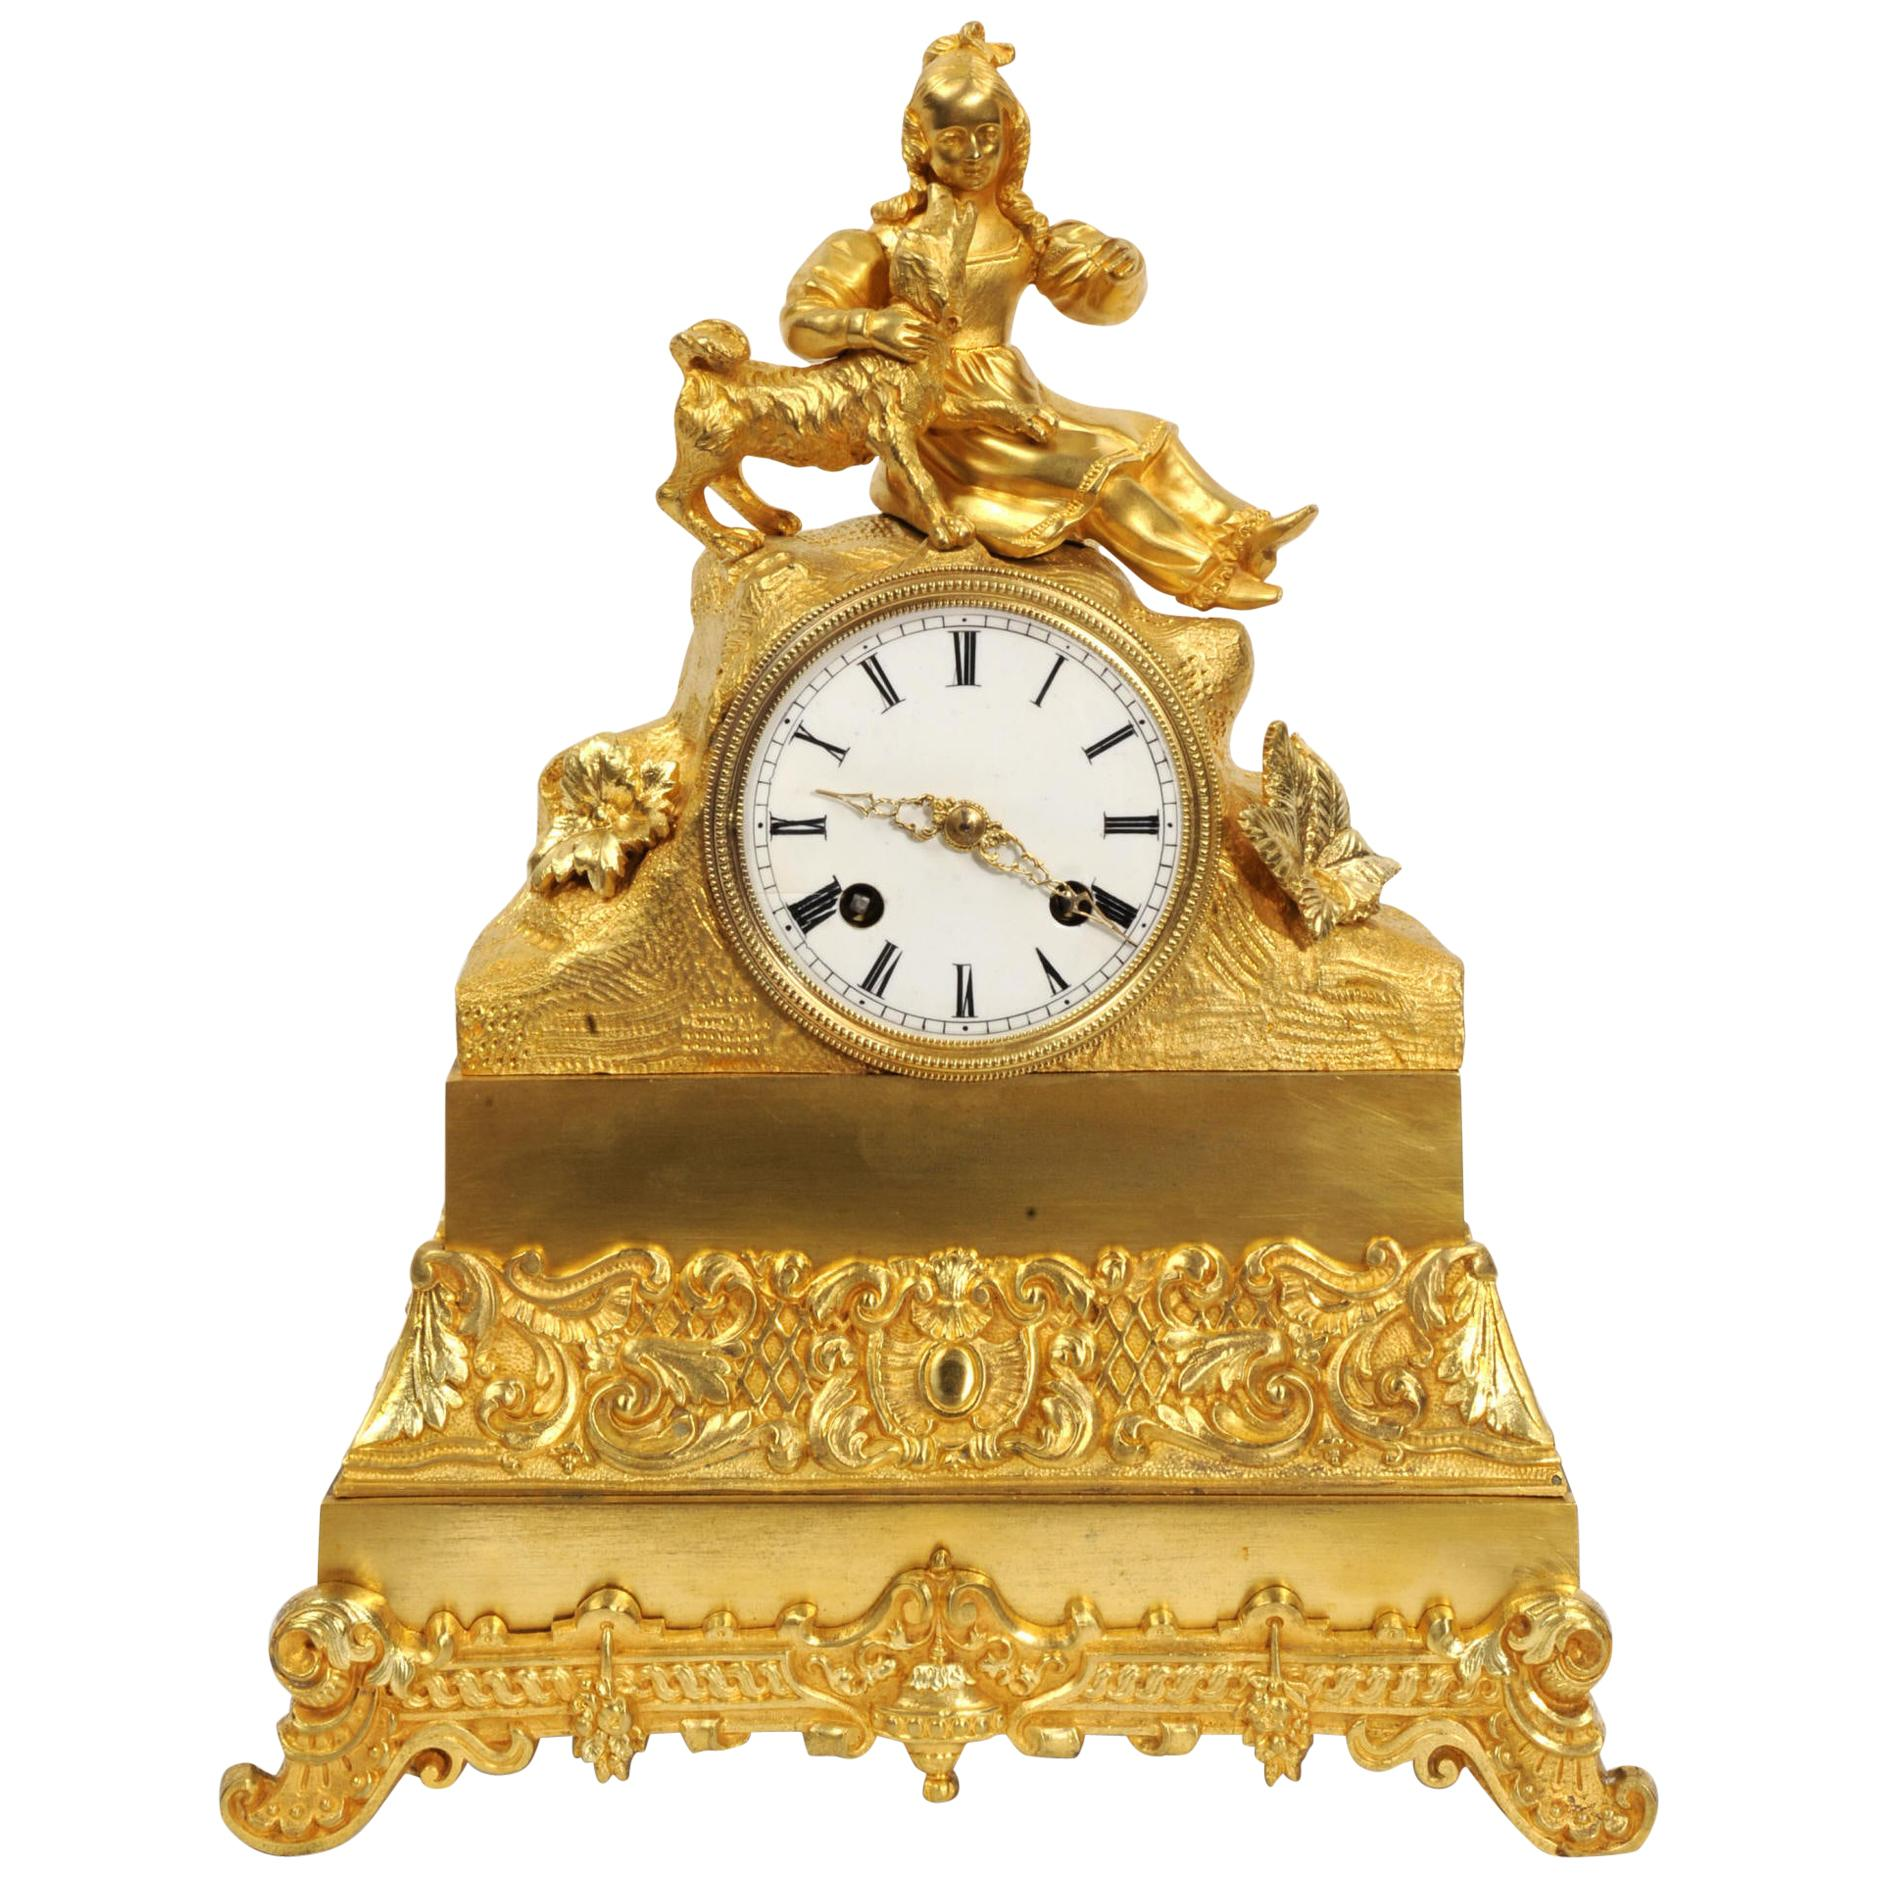 Early Japy Freres Antique French Ormolu Clock, A Girl with her Dog